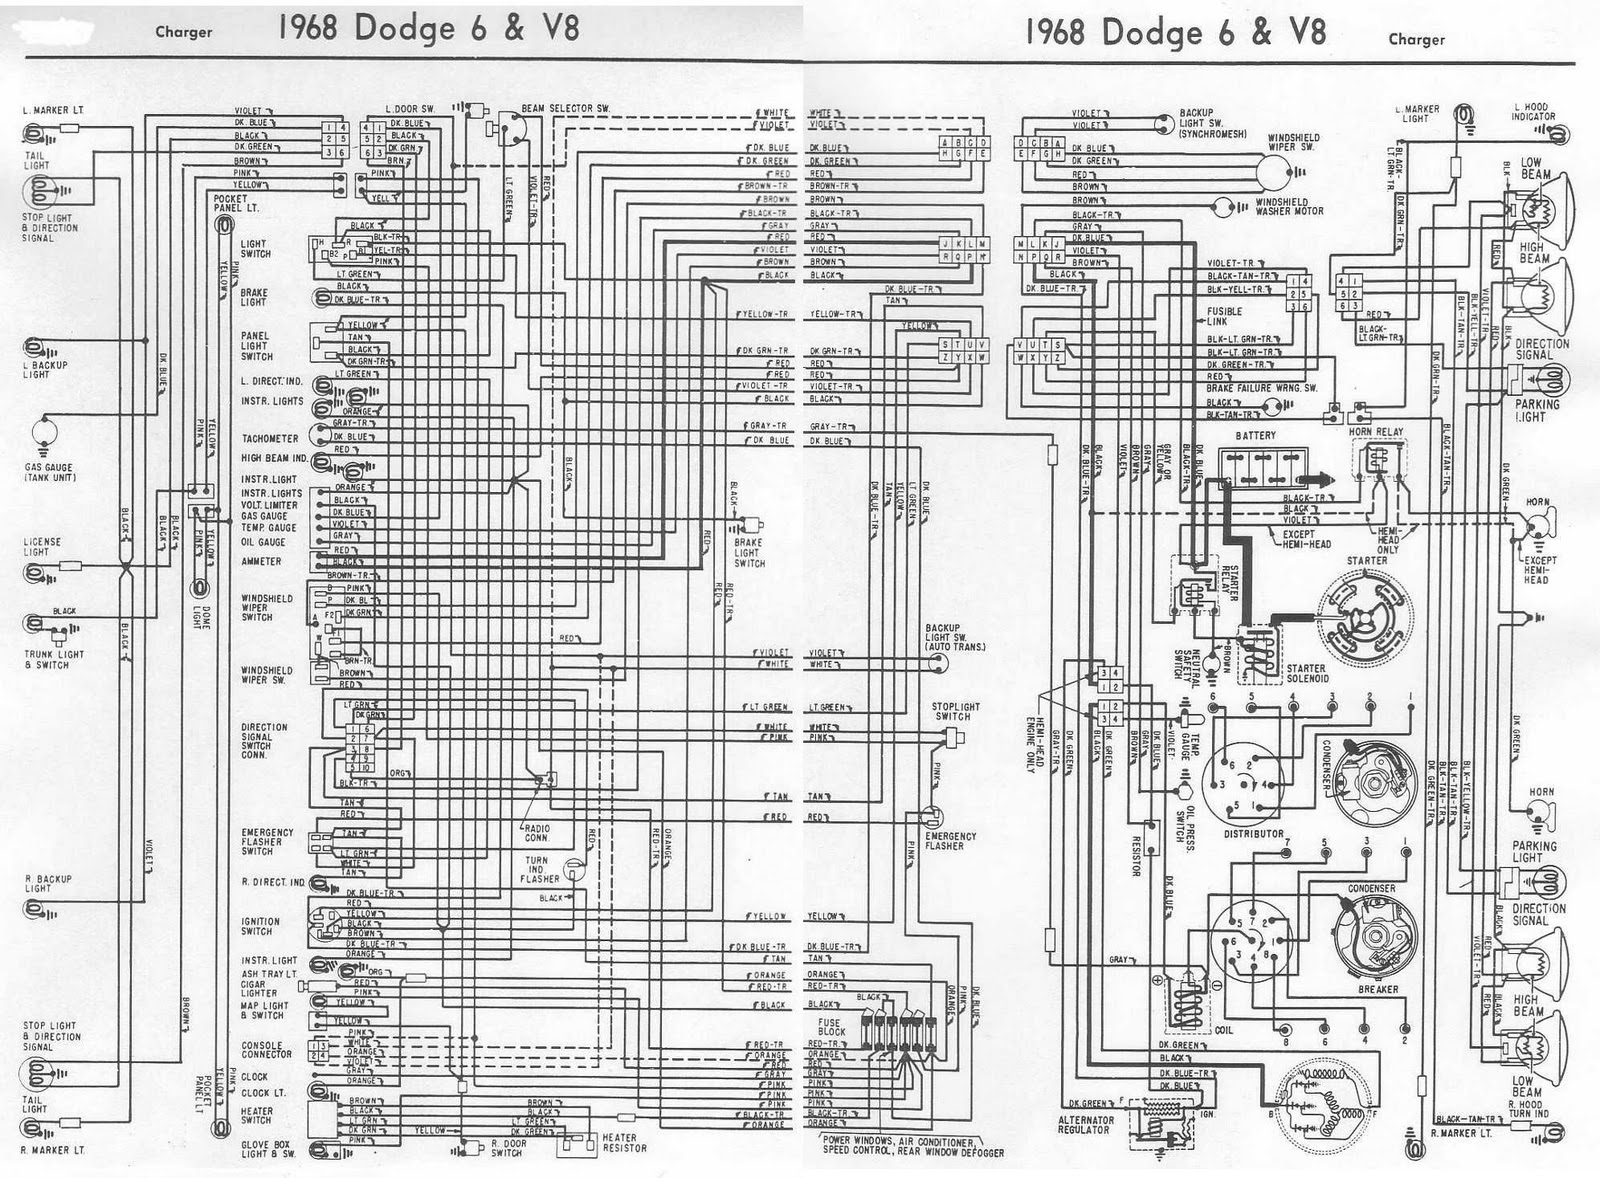 72 lemans wiring diagram wiring diagram ebookle mans 66 wiring diagram wiring diagram72 lemans wiring diagram control cables \\\\u0026 wiring